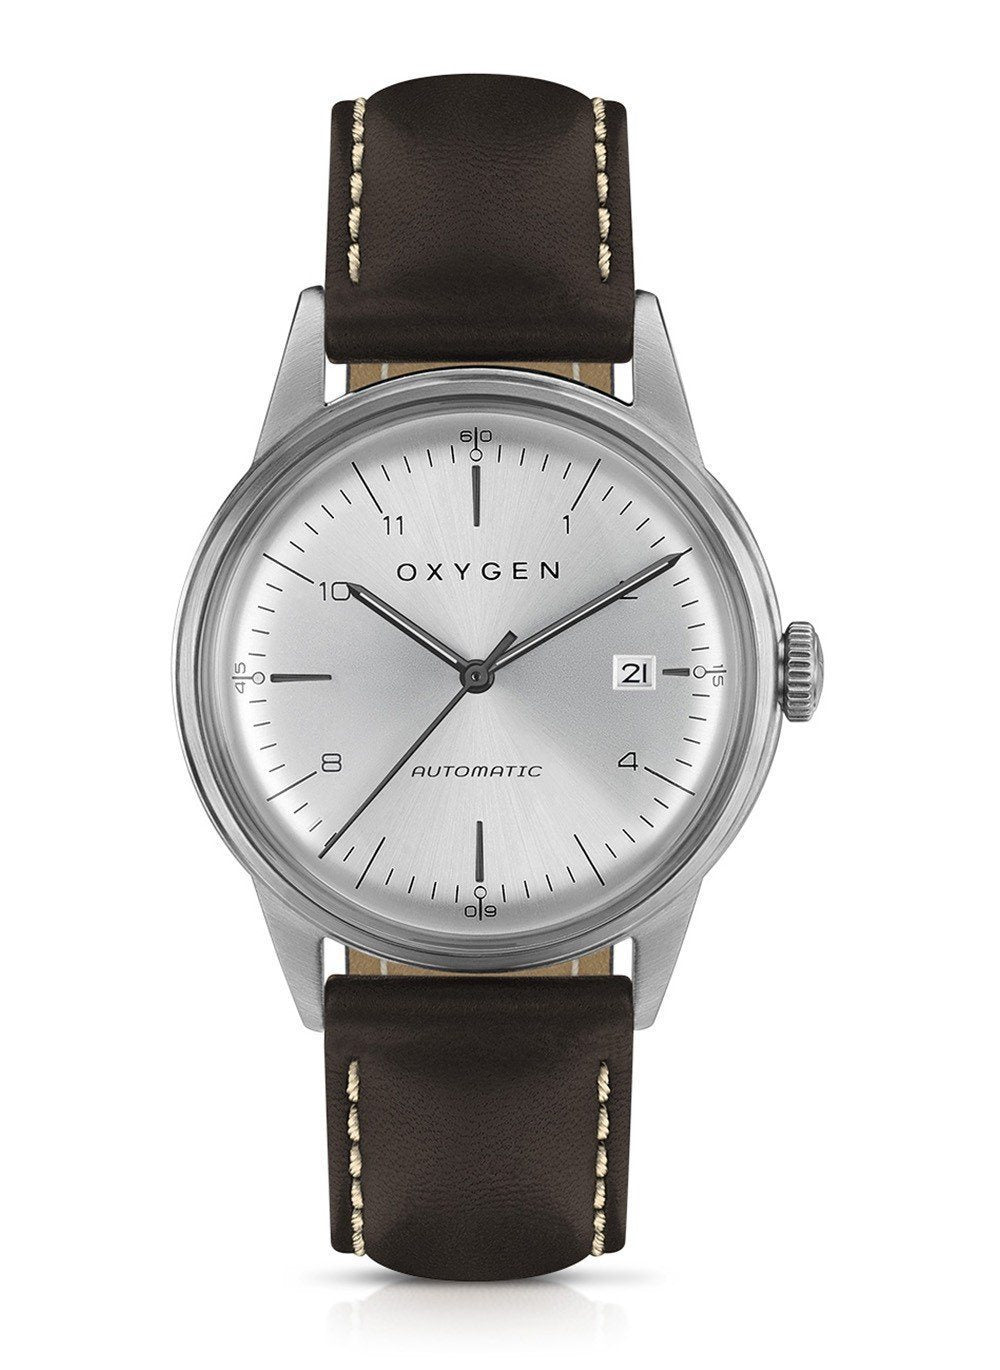 City 40 Auto Walter Watch - Oxygen Legend